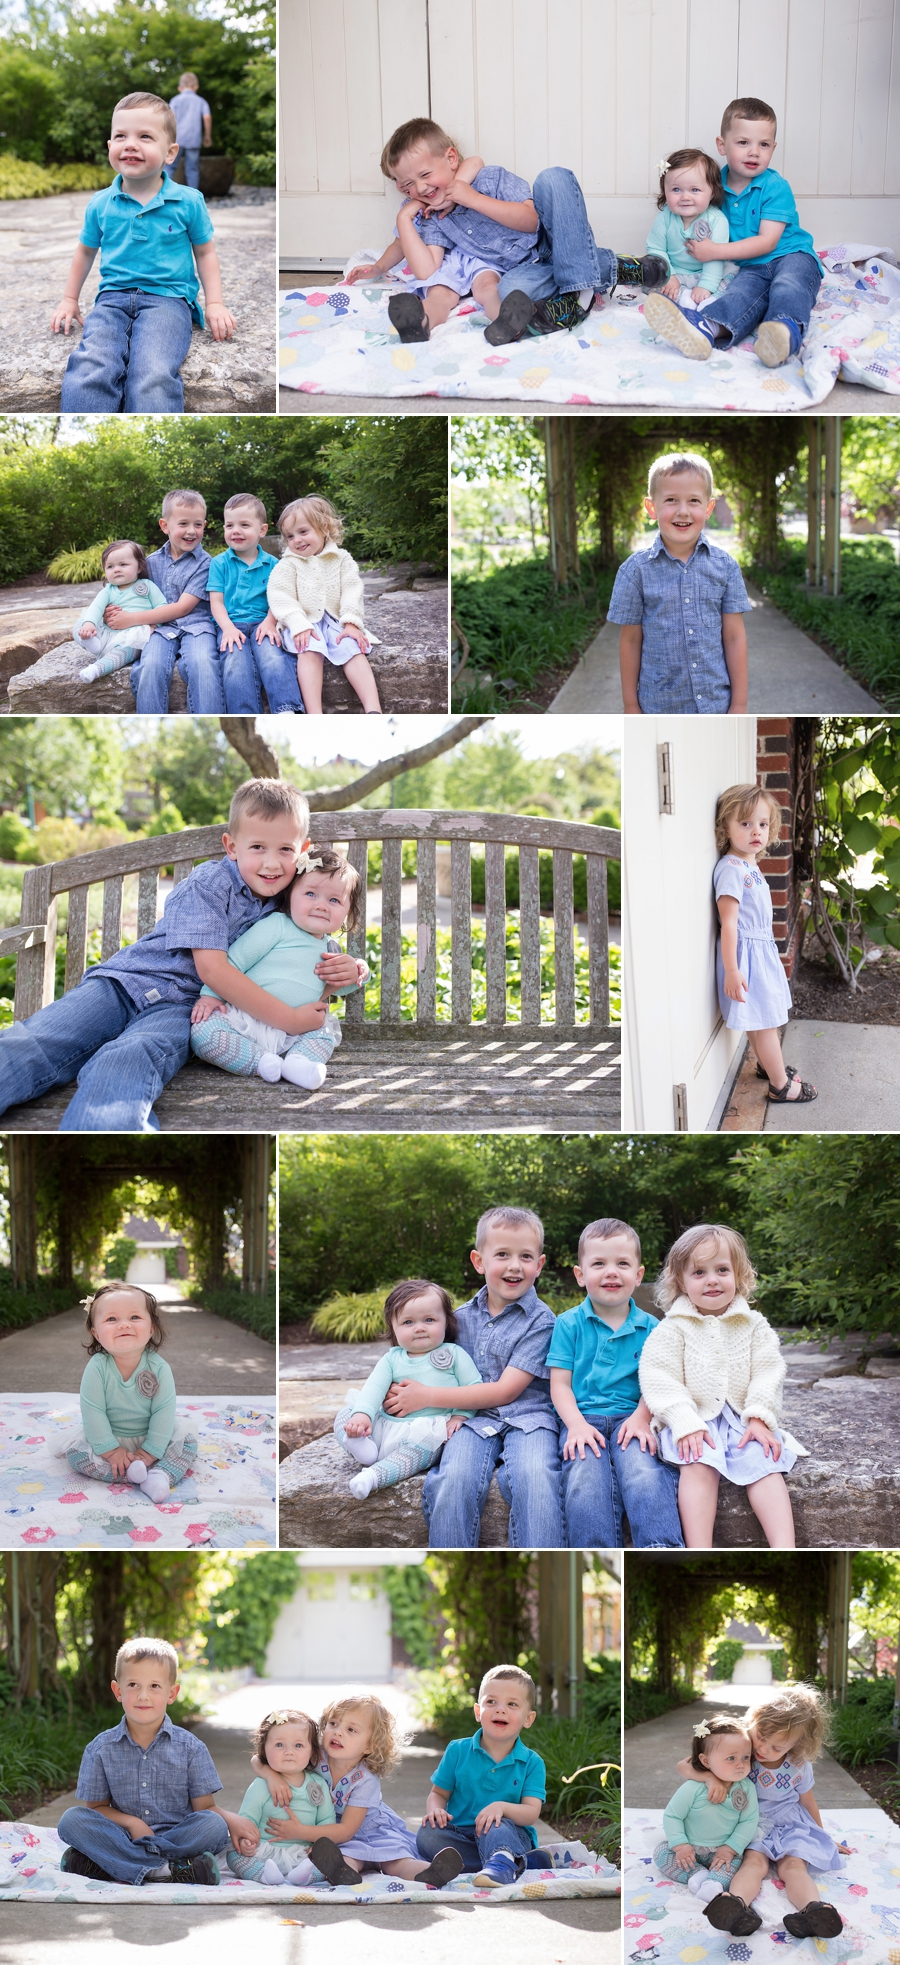 Spring Mini Sessions: May